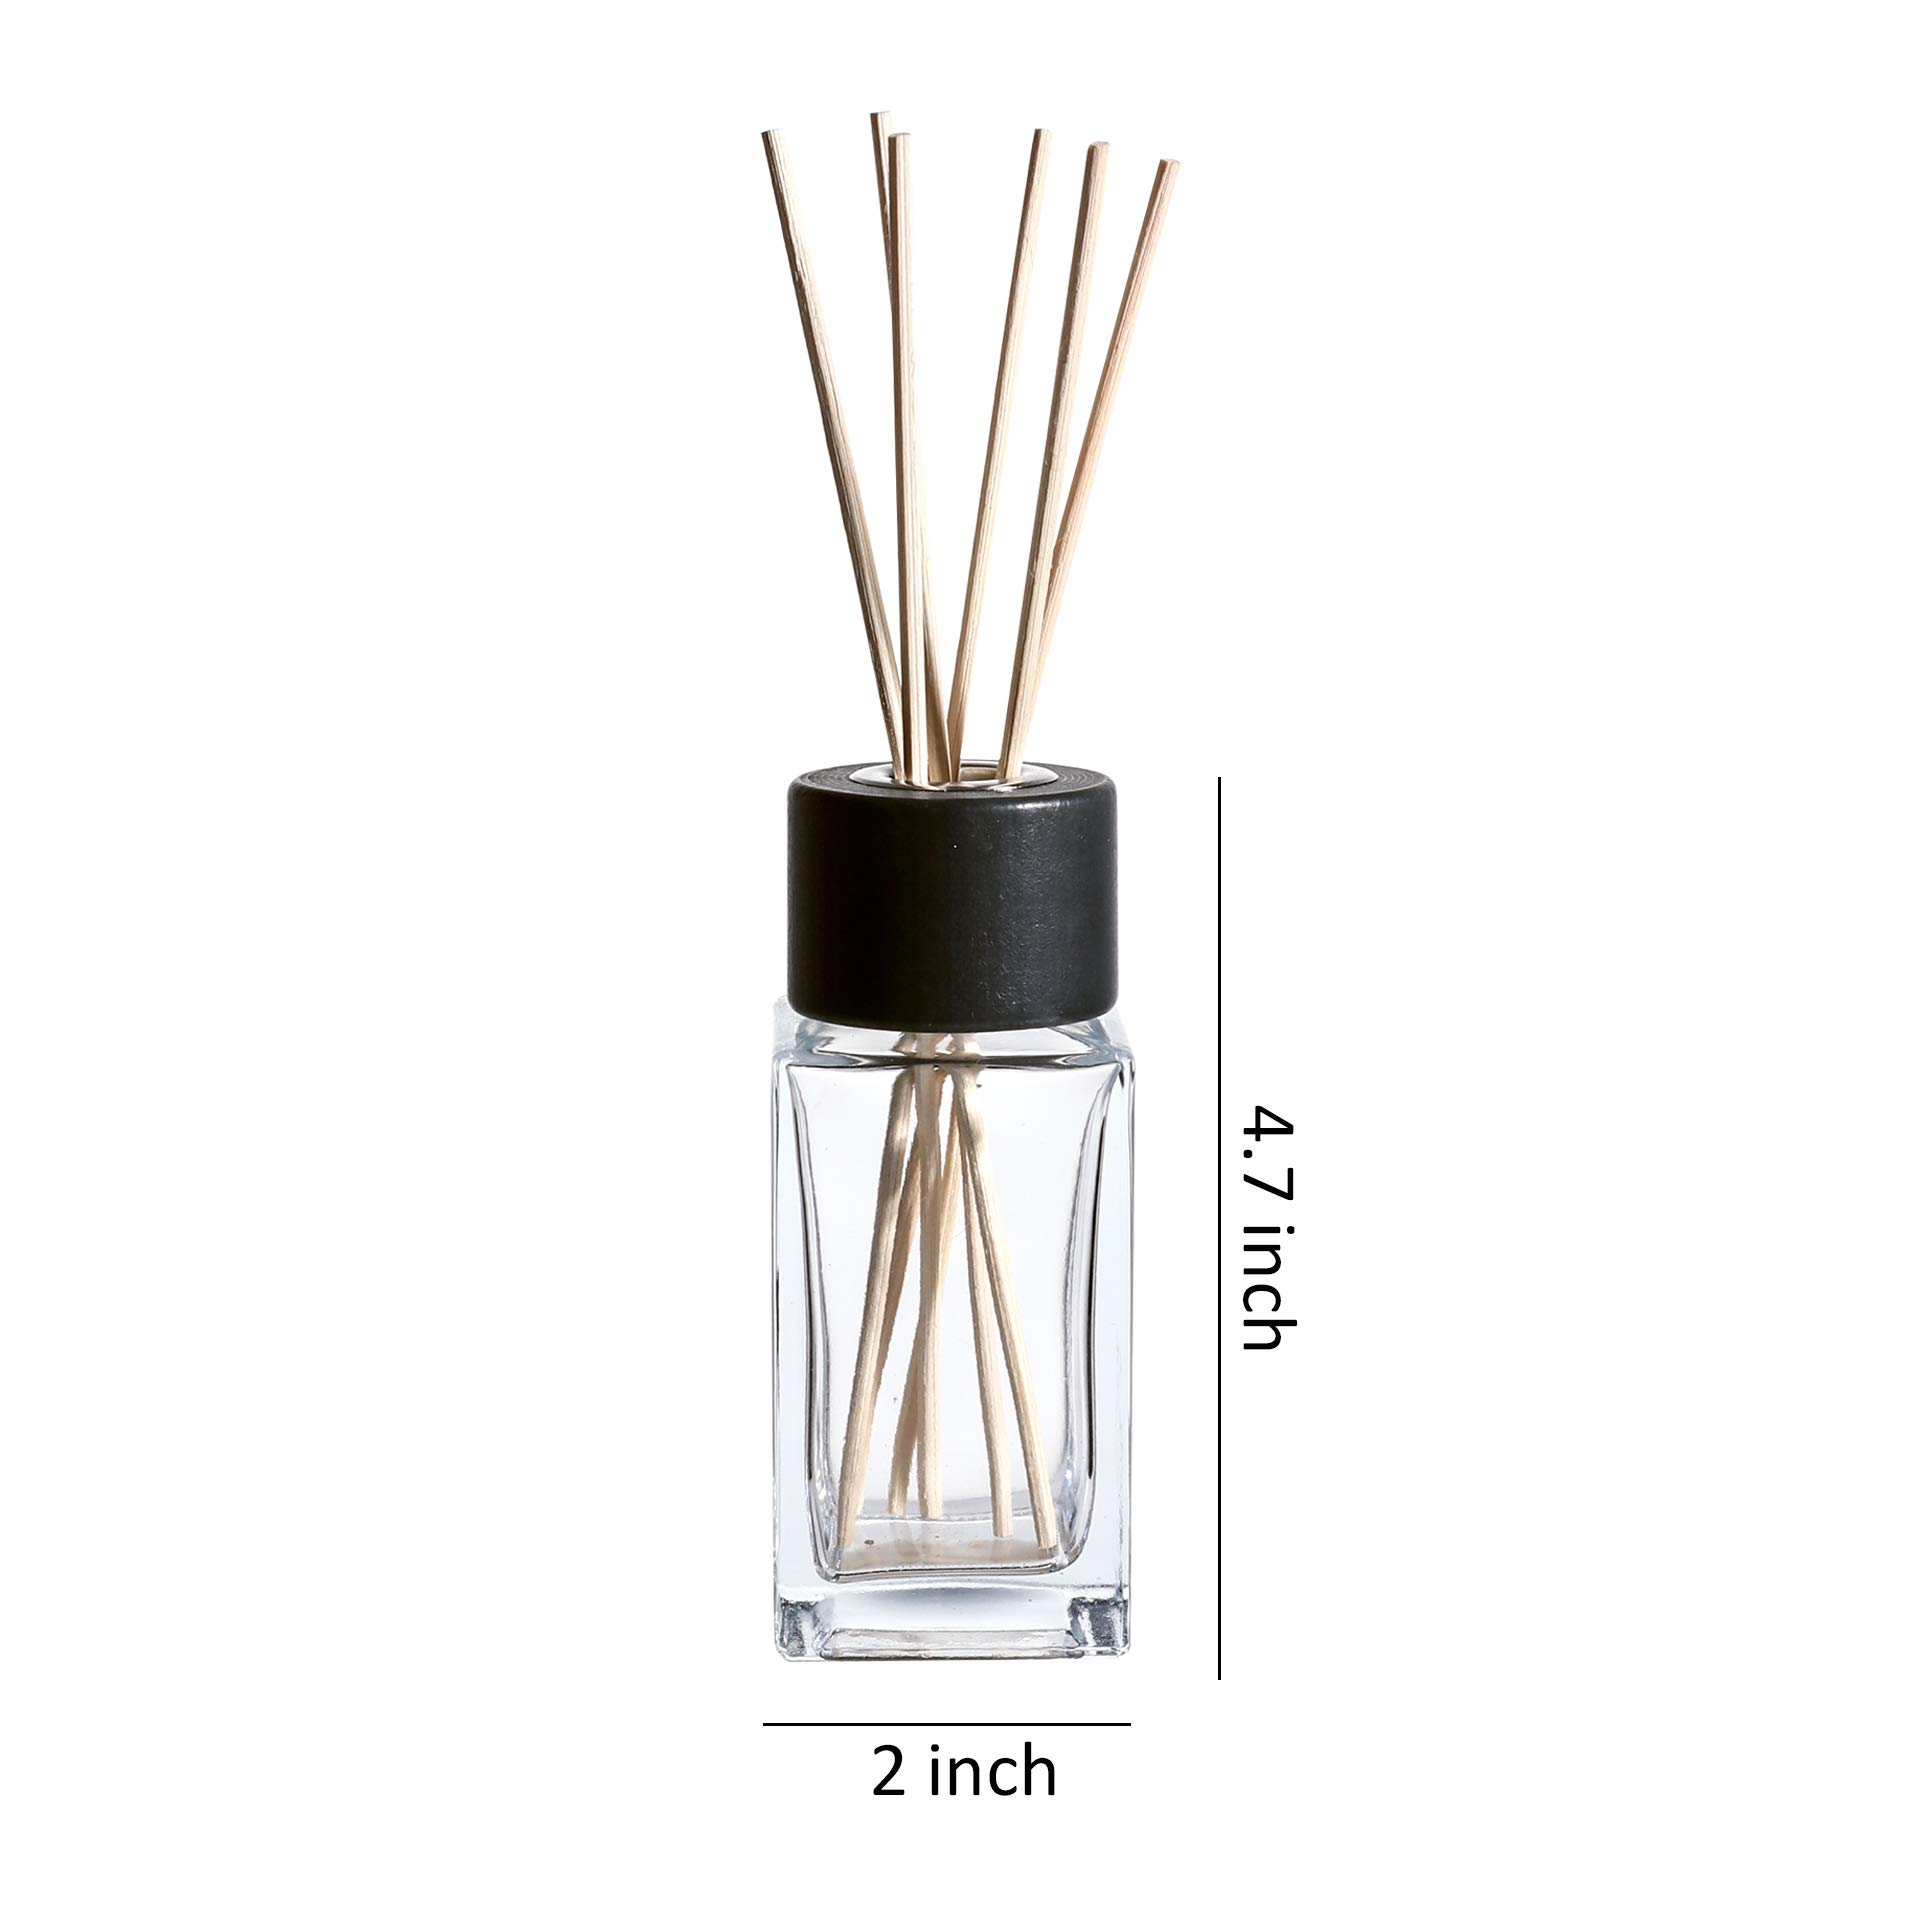 Whole Housewares 100ML 3.4Ounce Clear Glass Diffuser Bottles with 24pcs Natural Reed Sticks, 4.7'' H Square Diffuser Bottle with Black Wood Caps, Set of 4 by Whole Housewares (Image #2)